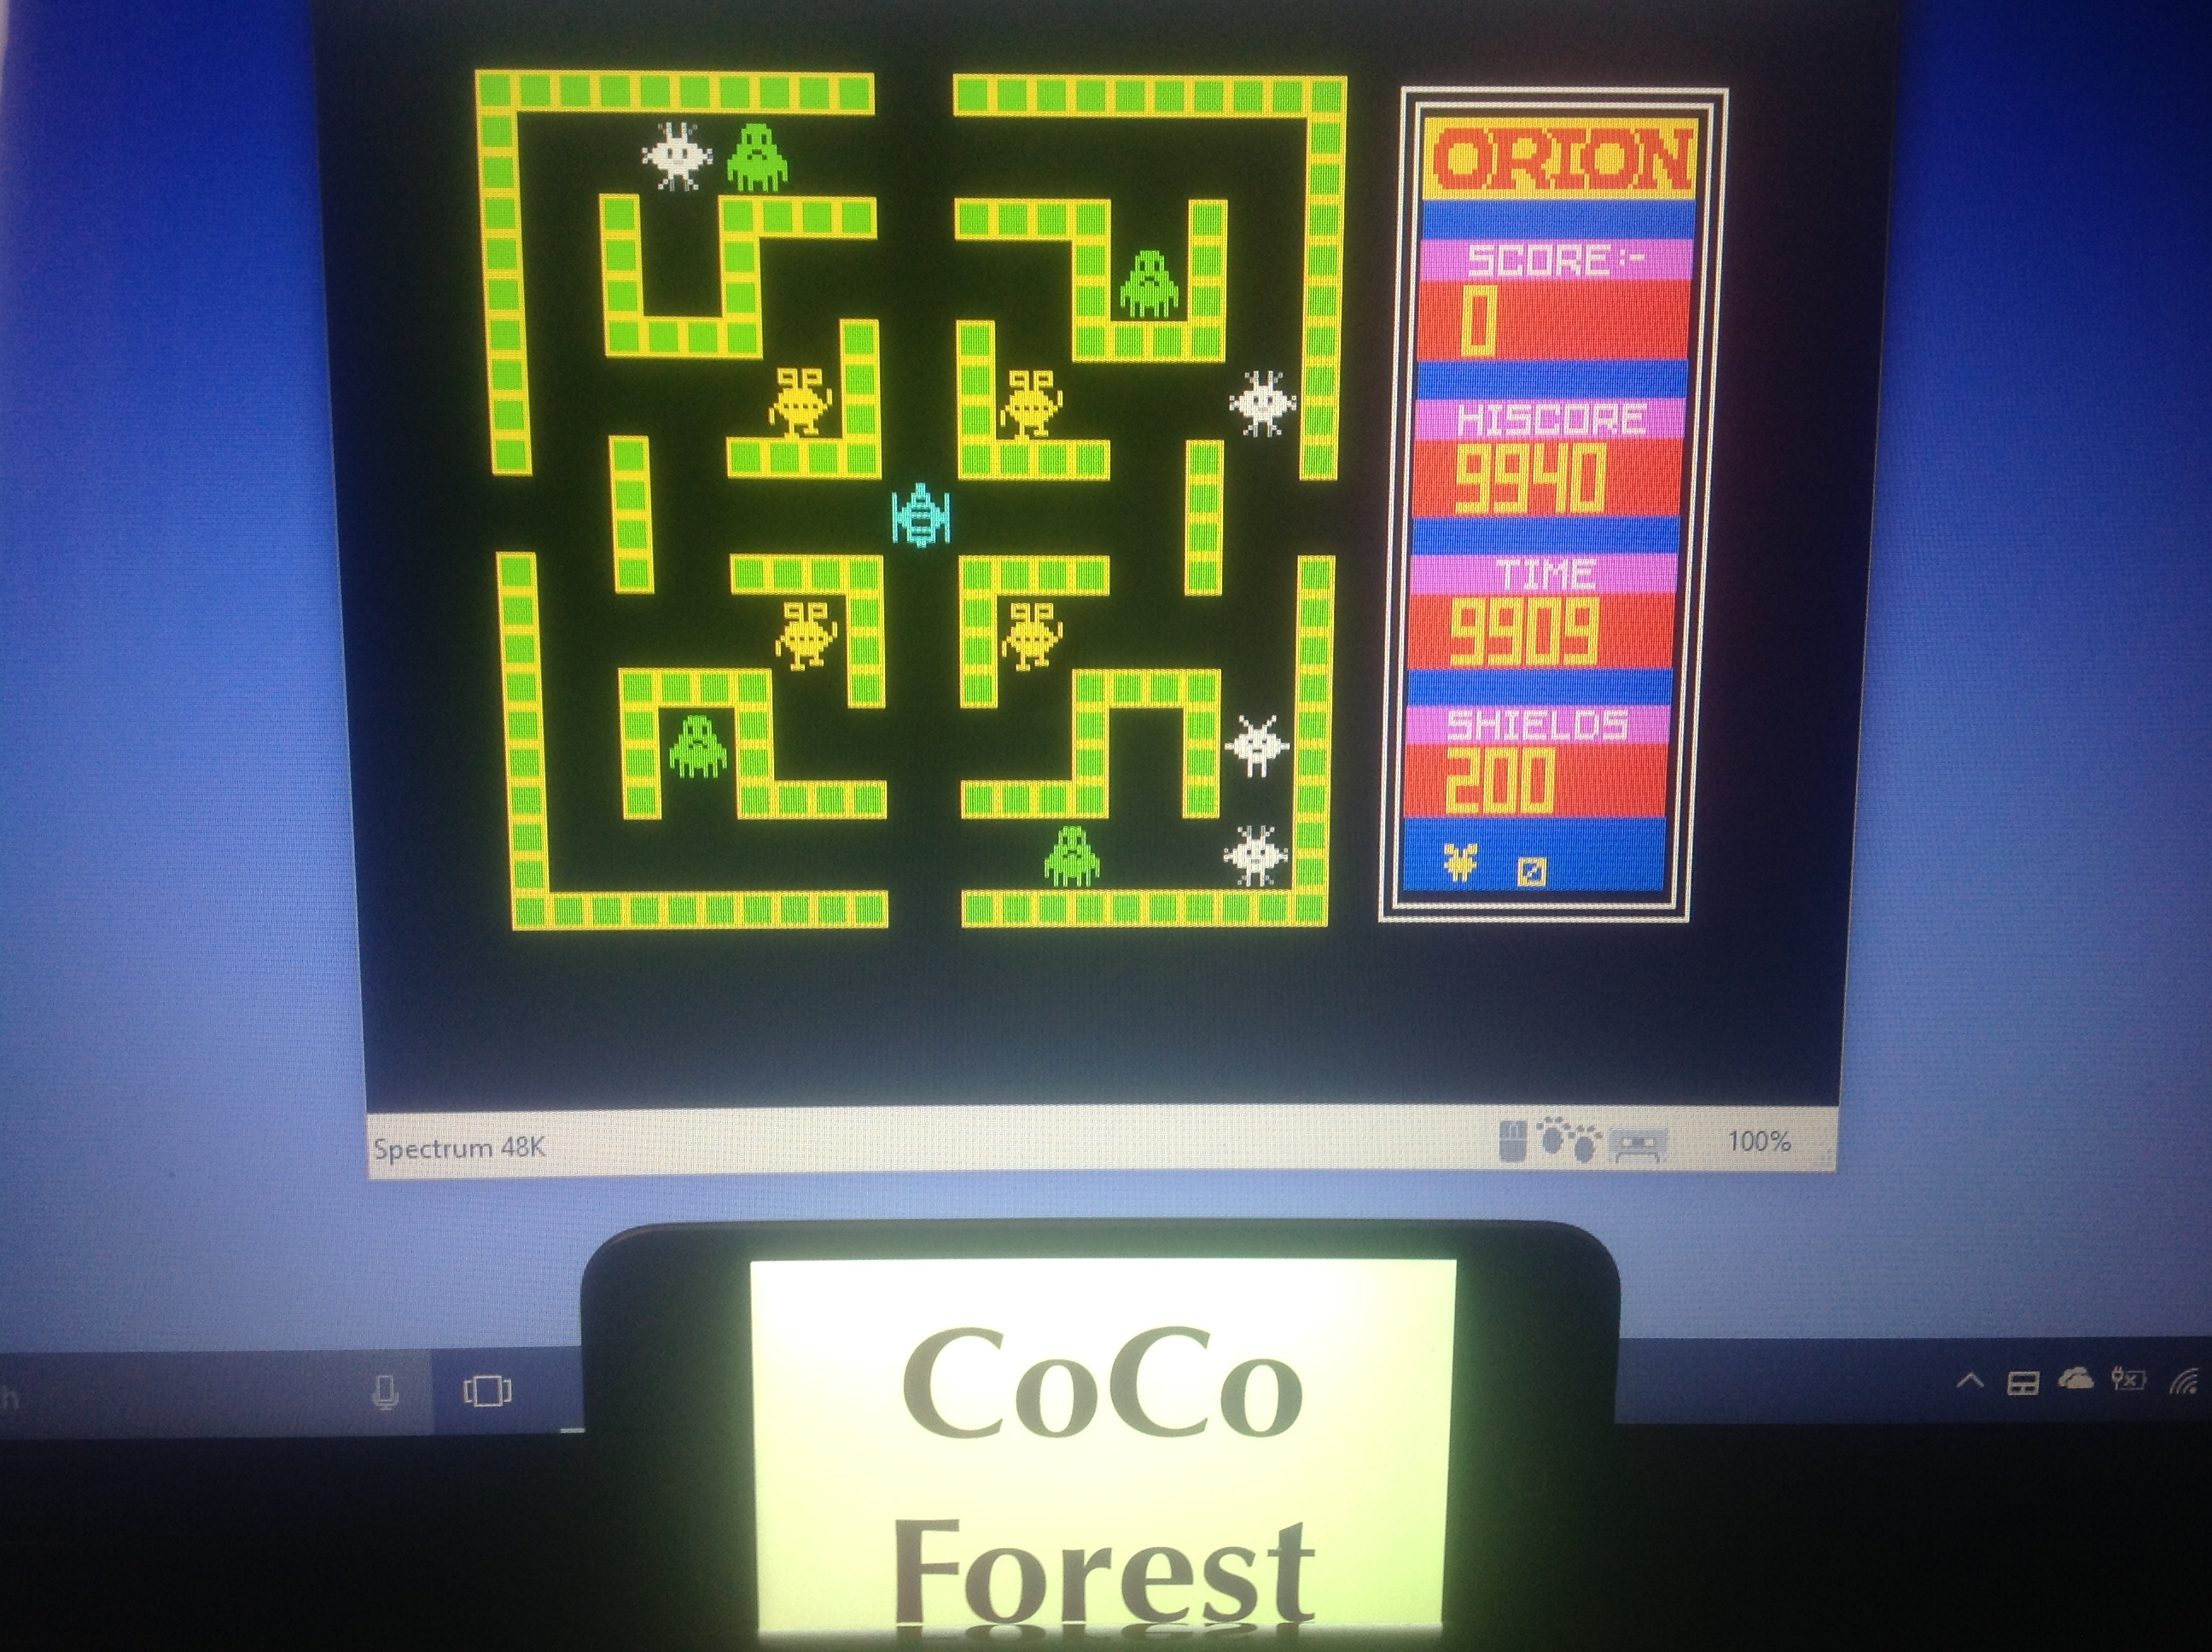 CoCoForest: Orion [Software Projects] (ZX Spectrum Emulated) 9,940 points on 2018-01-17 08:05:03